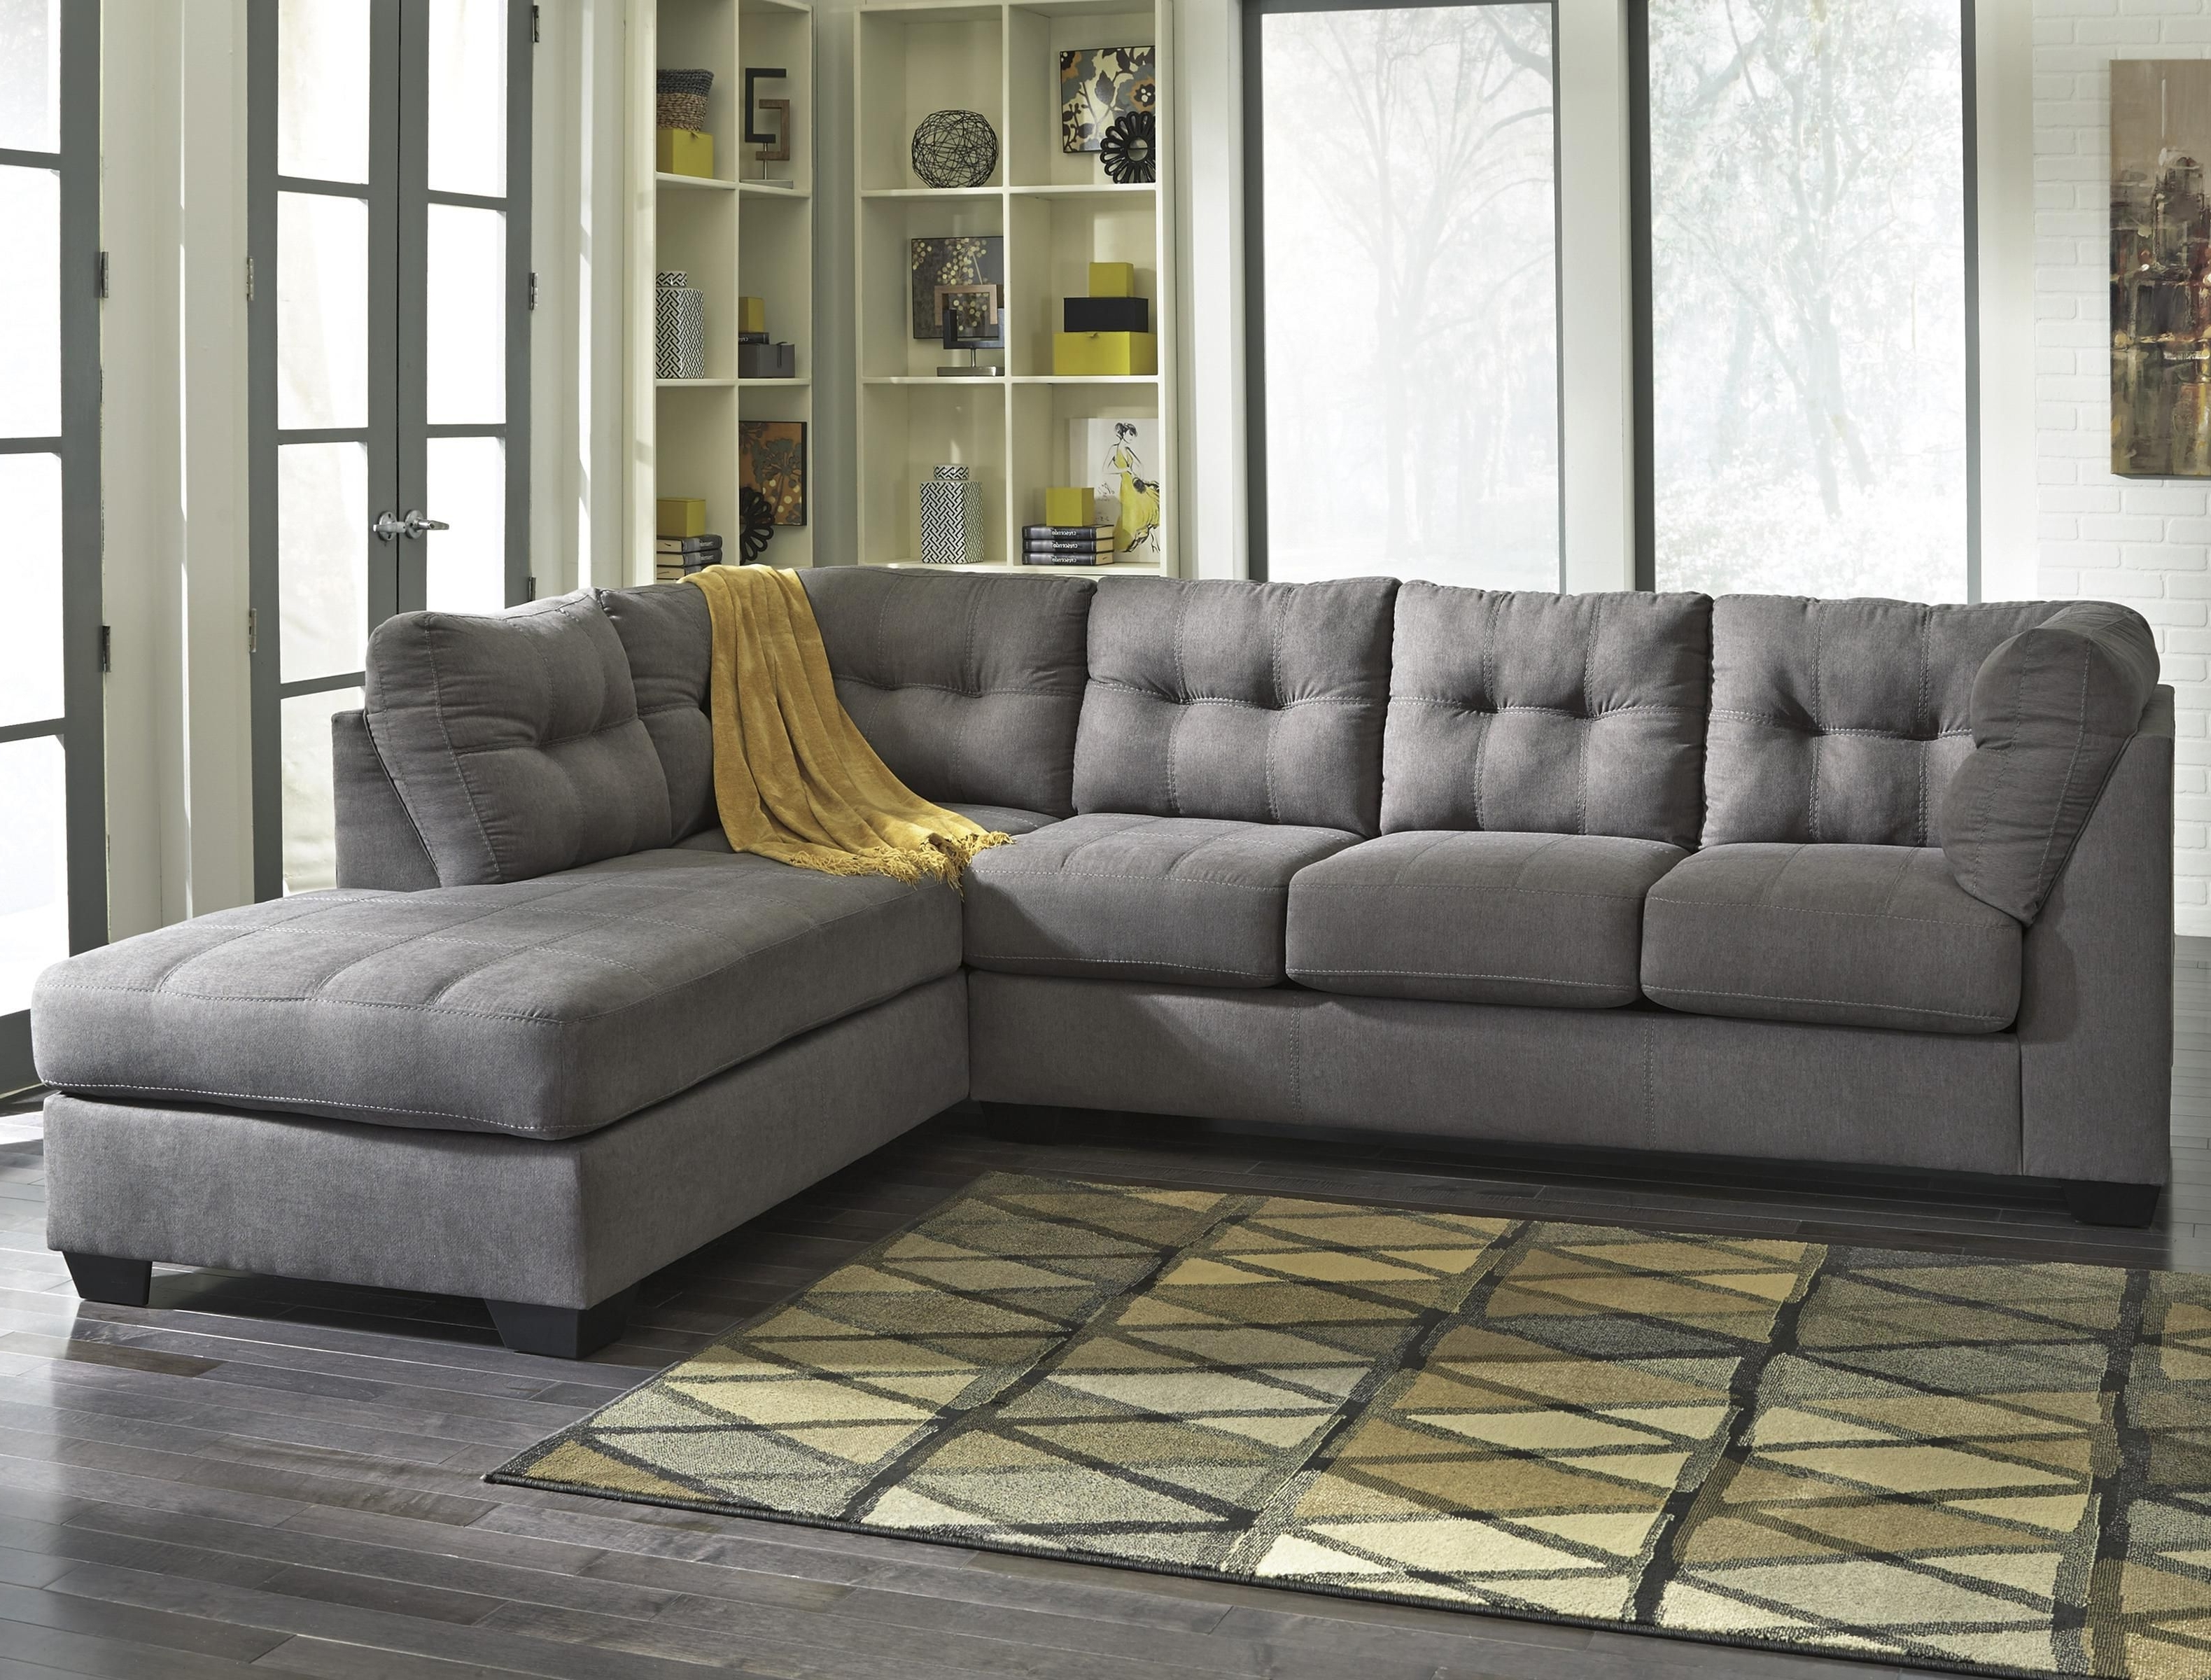 Sectional Sofas At Buffalo Ny For Most Up To Date 2 Piece Sectional W/ Sleeper Sofa & Chaise Maier – Charcoal  (View 9 of 15)